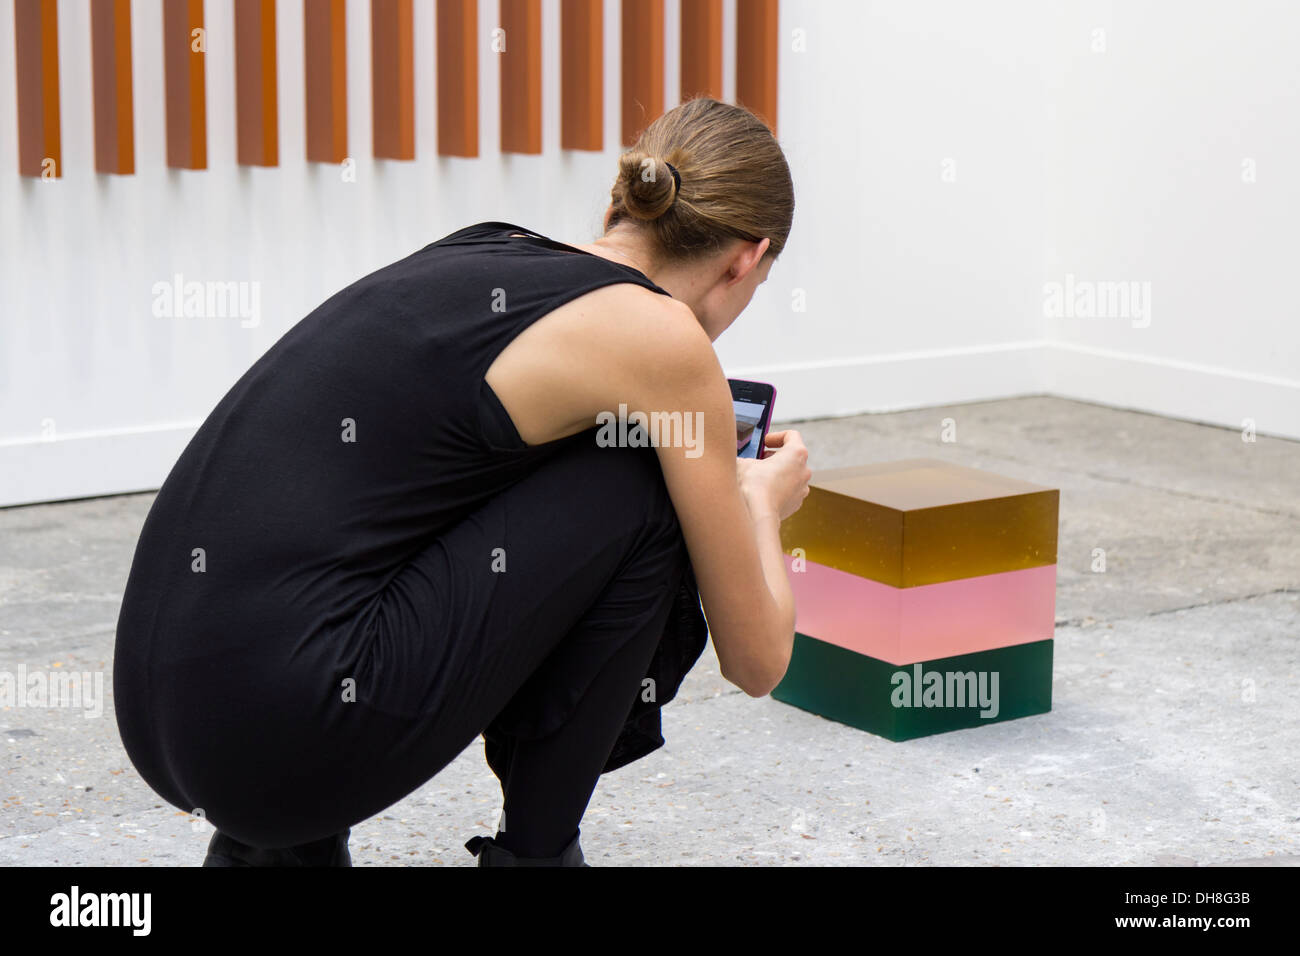 Woman photographing a 3 colors resin cube at the Fiac 2013 (contemporary art fair) at le Grand Palais in Paris, France - Stock Image